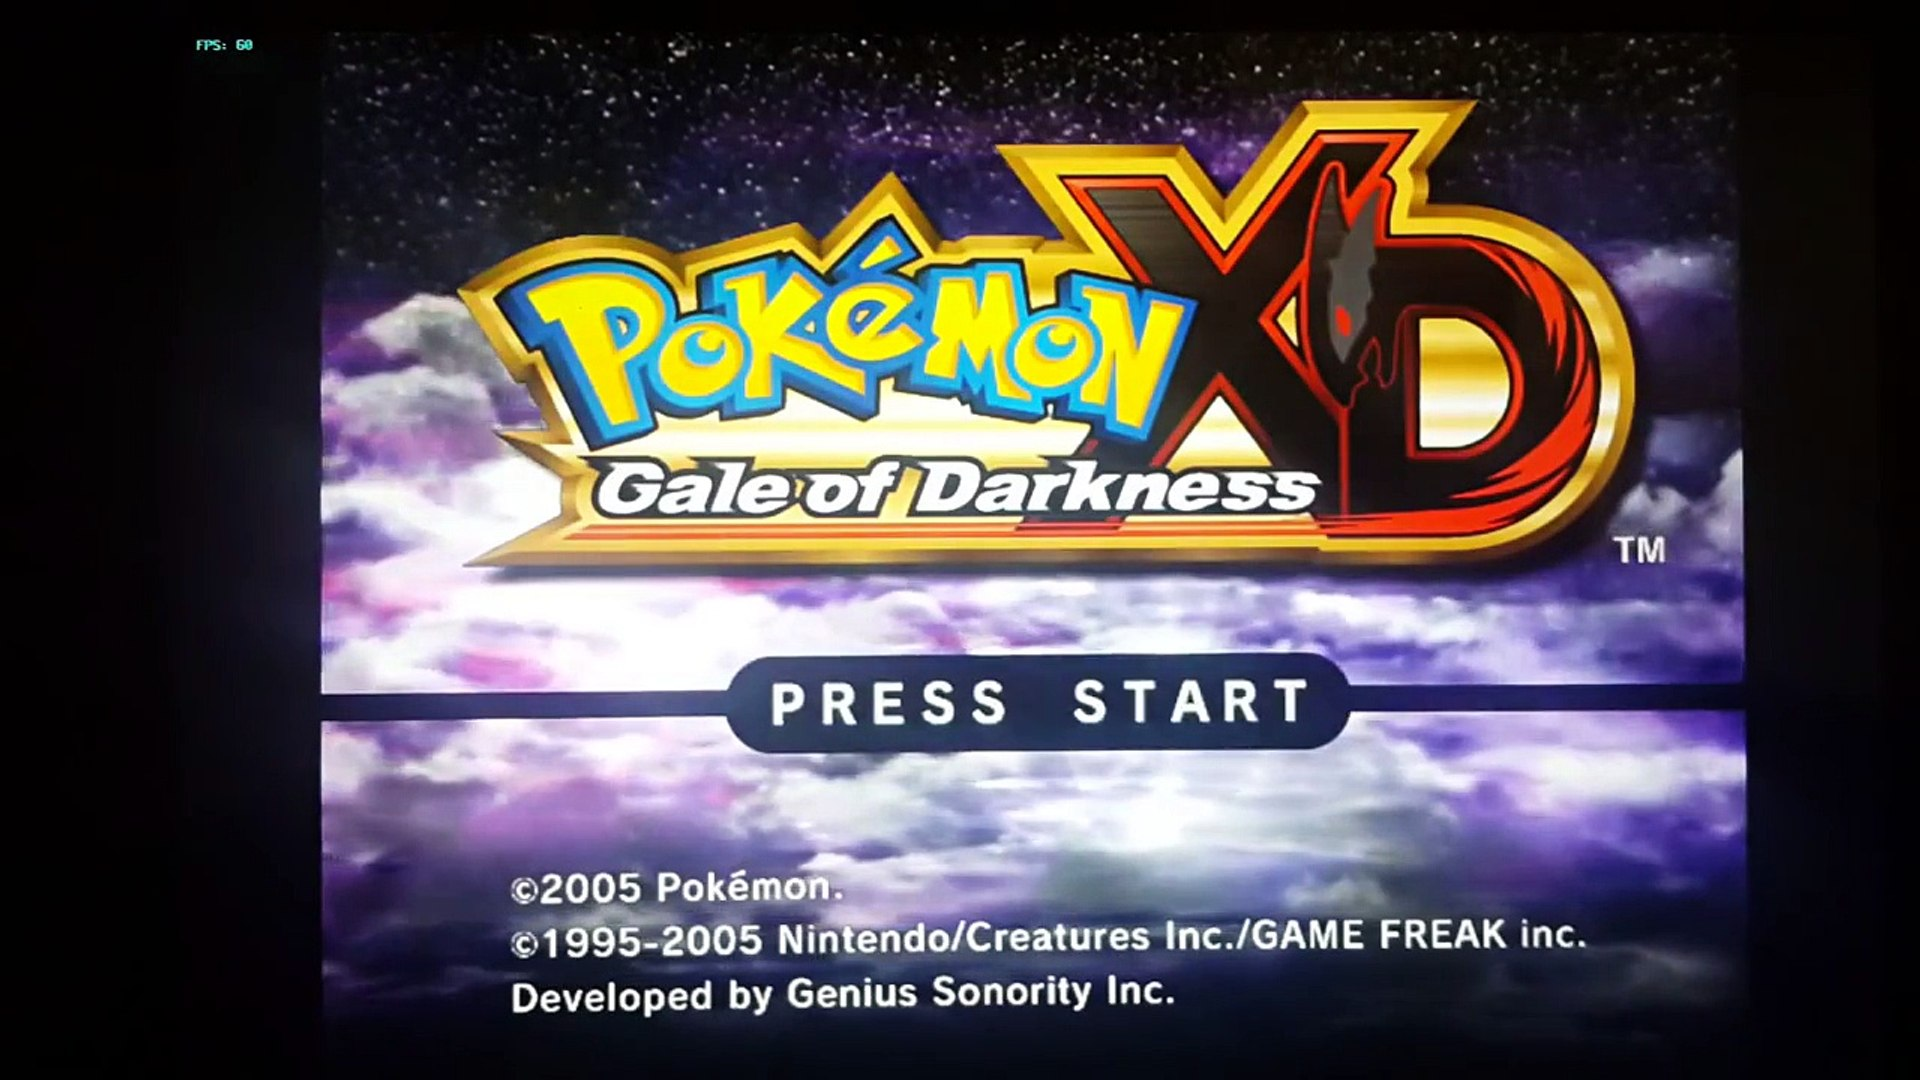 Pokémon XD Gale Of Darkness Android Dolphin Emulator on Nvidia Shield  Tablet 2015